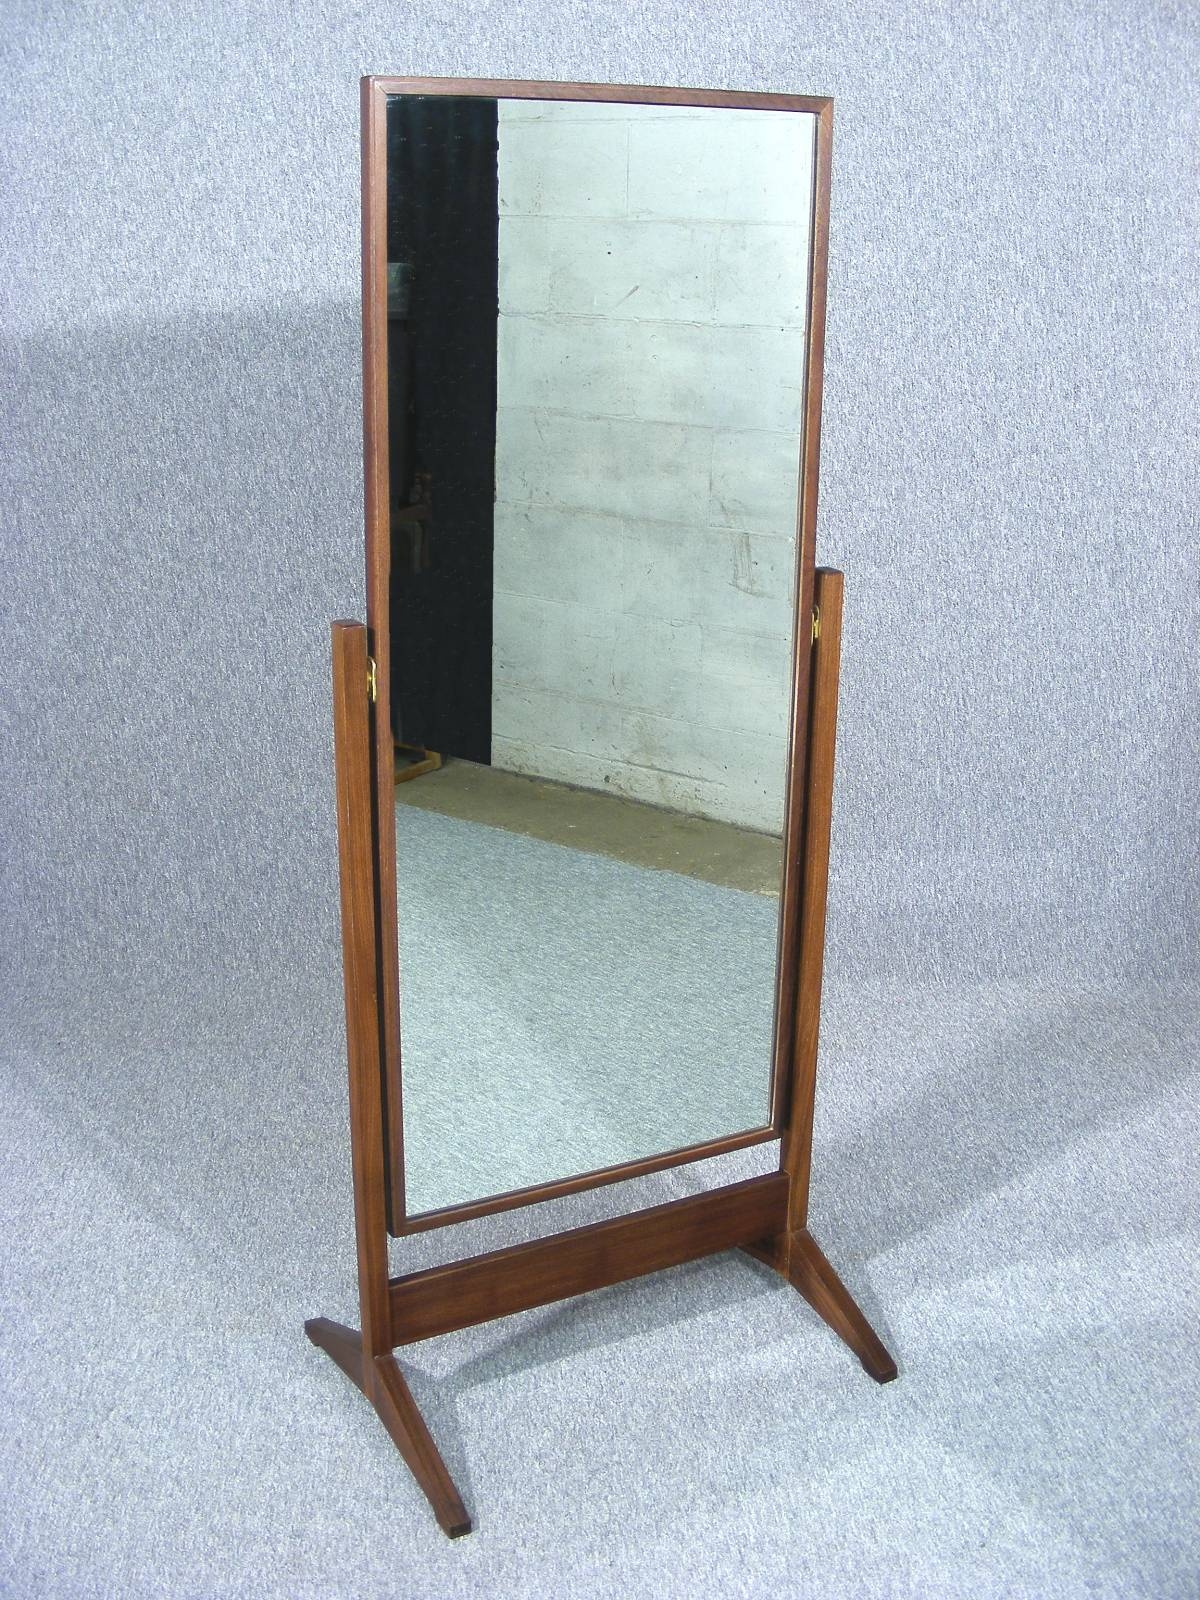 Vintage Full Length Mirror | Vanity Decoration pertaining to Victorian Floor Mirrors (Image 15 of 15)